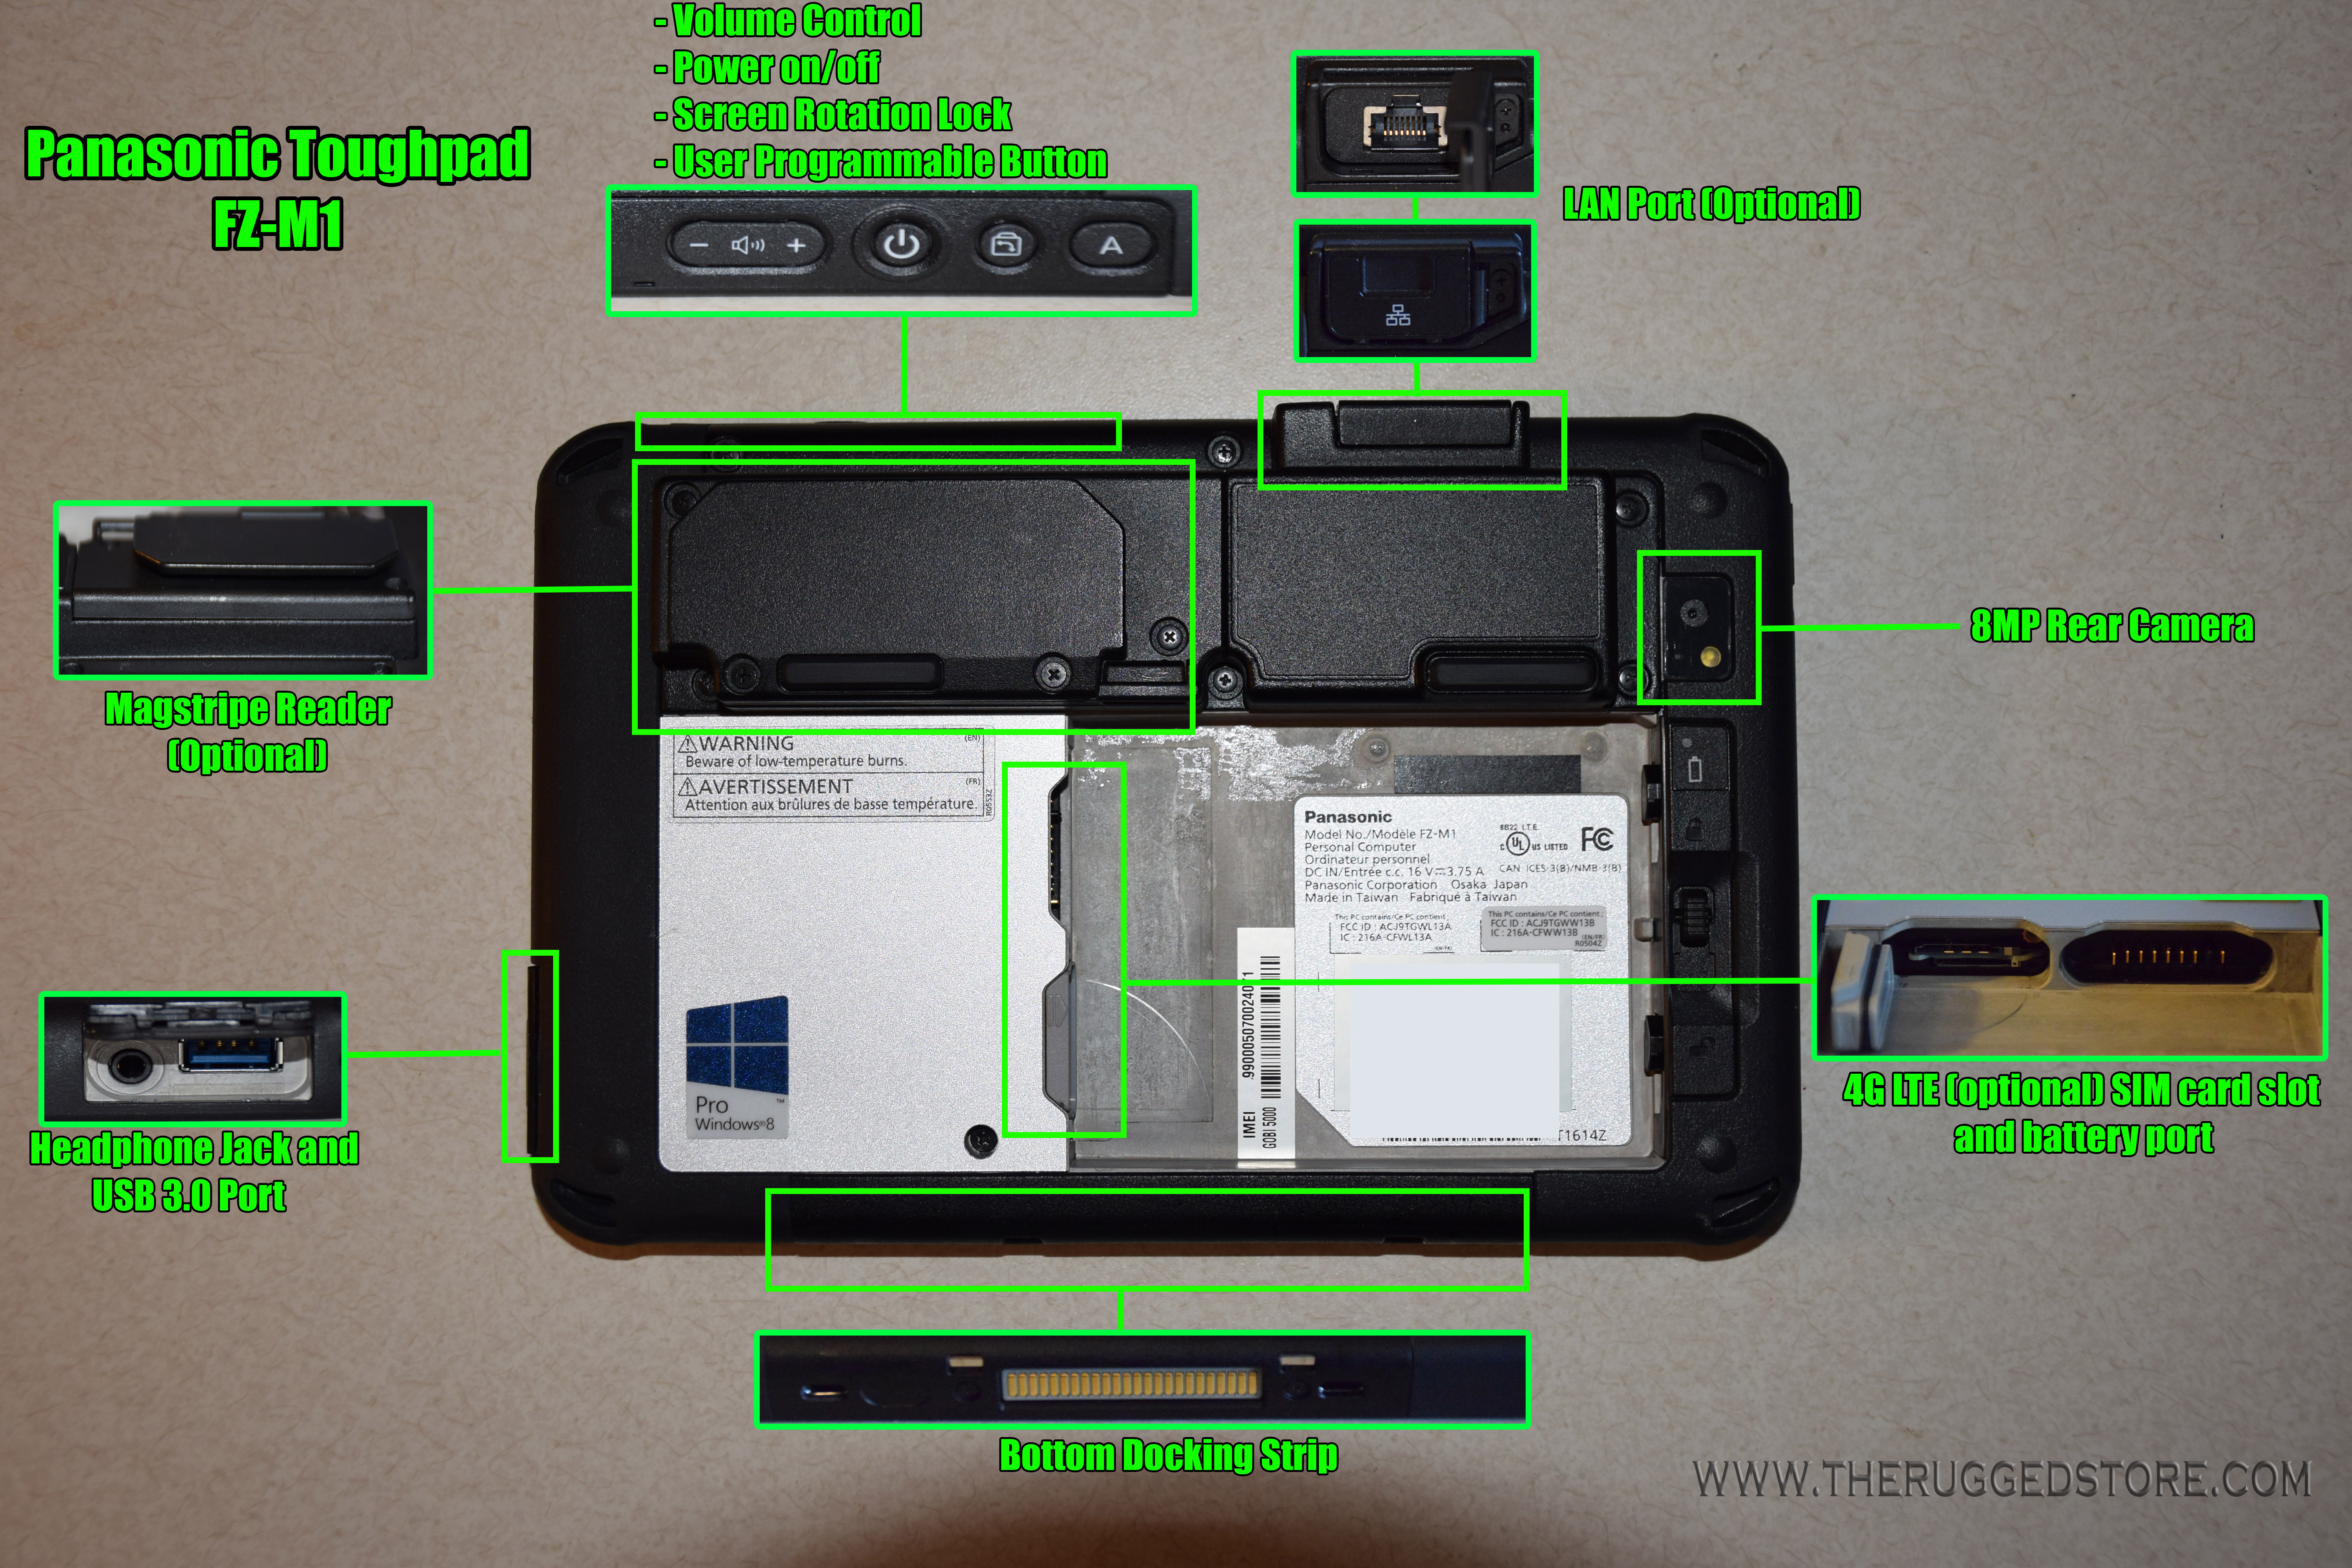 The FZ M1 Toughpad The Rugged Store